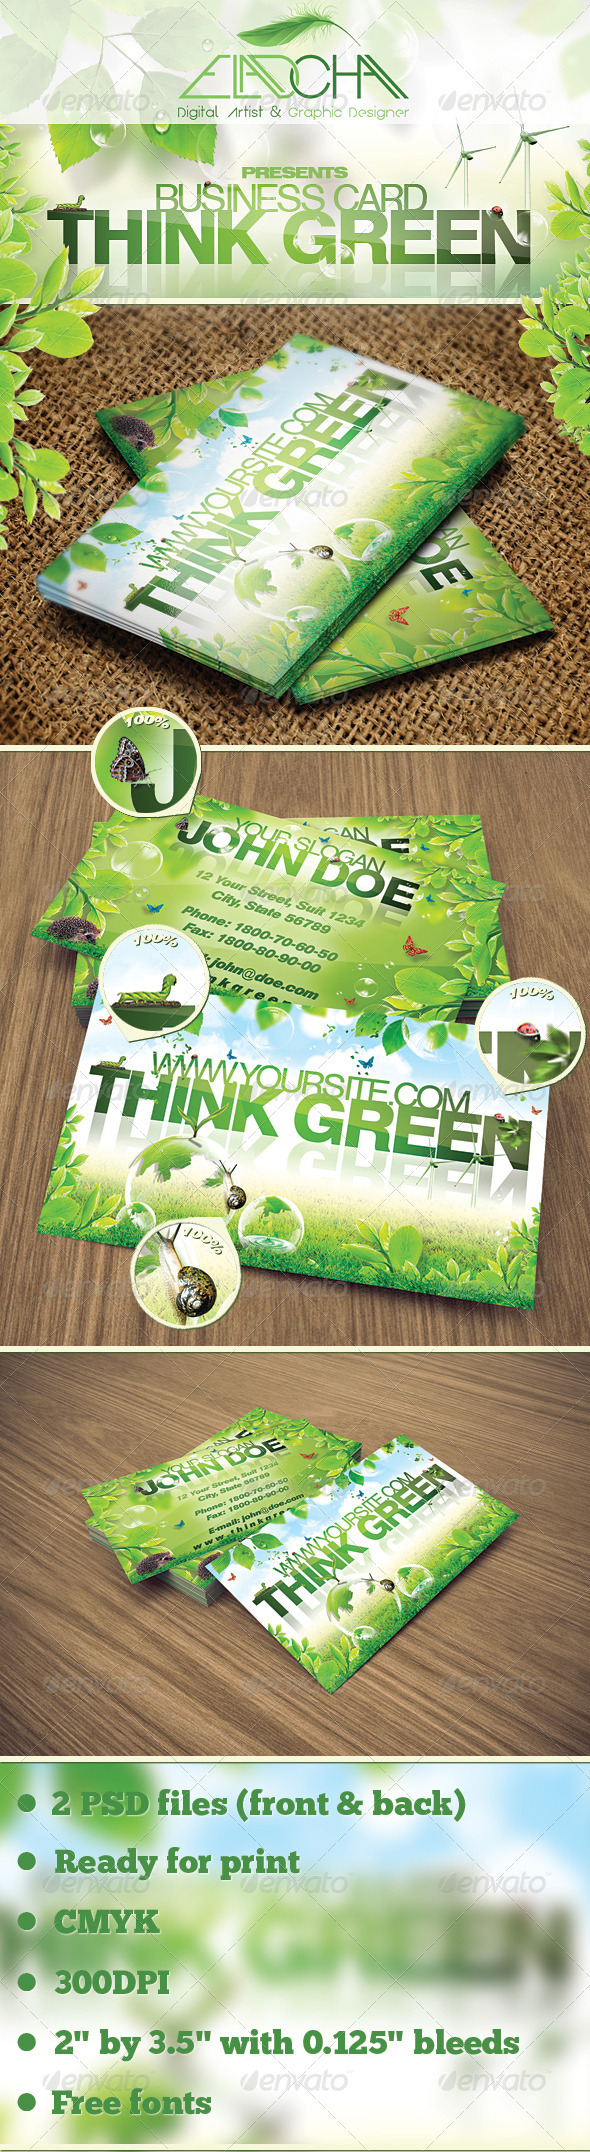 Think Green Business Card - Creative Business Cards